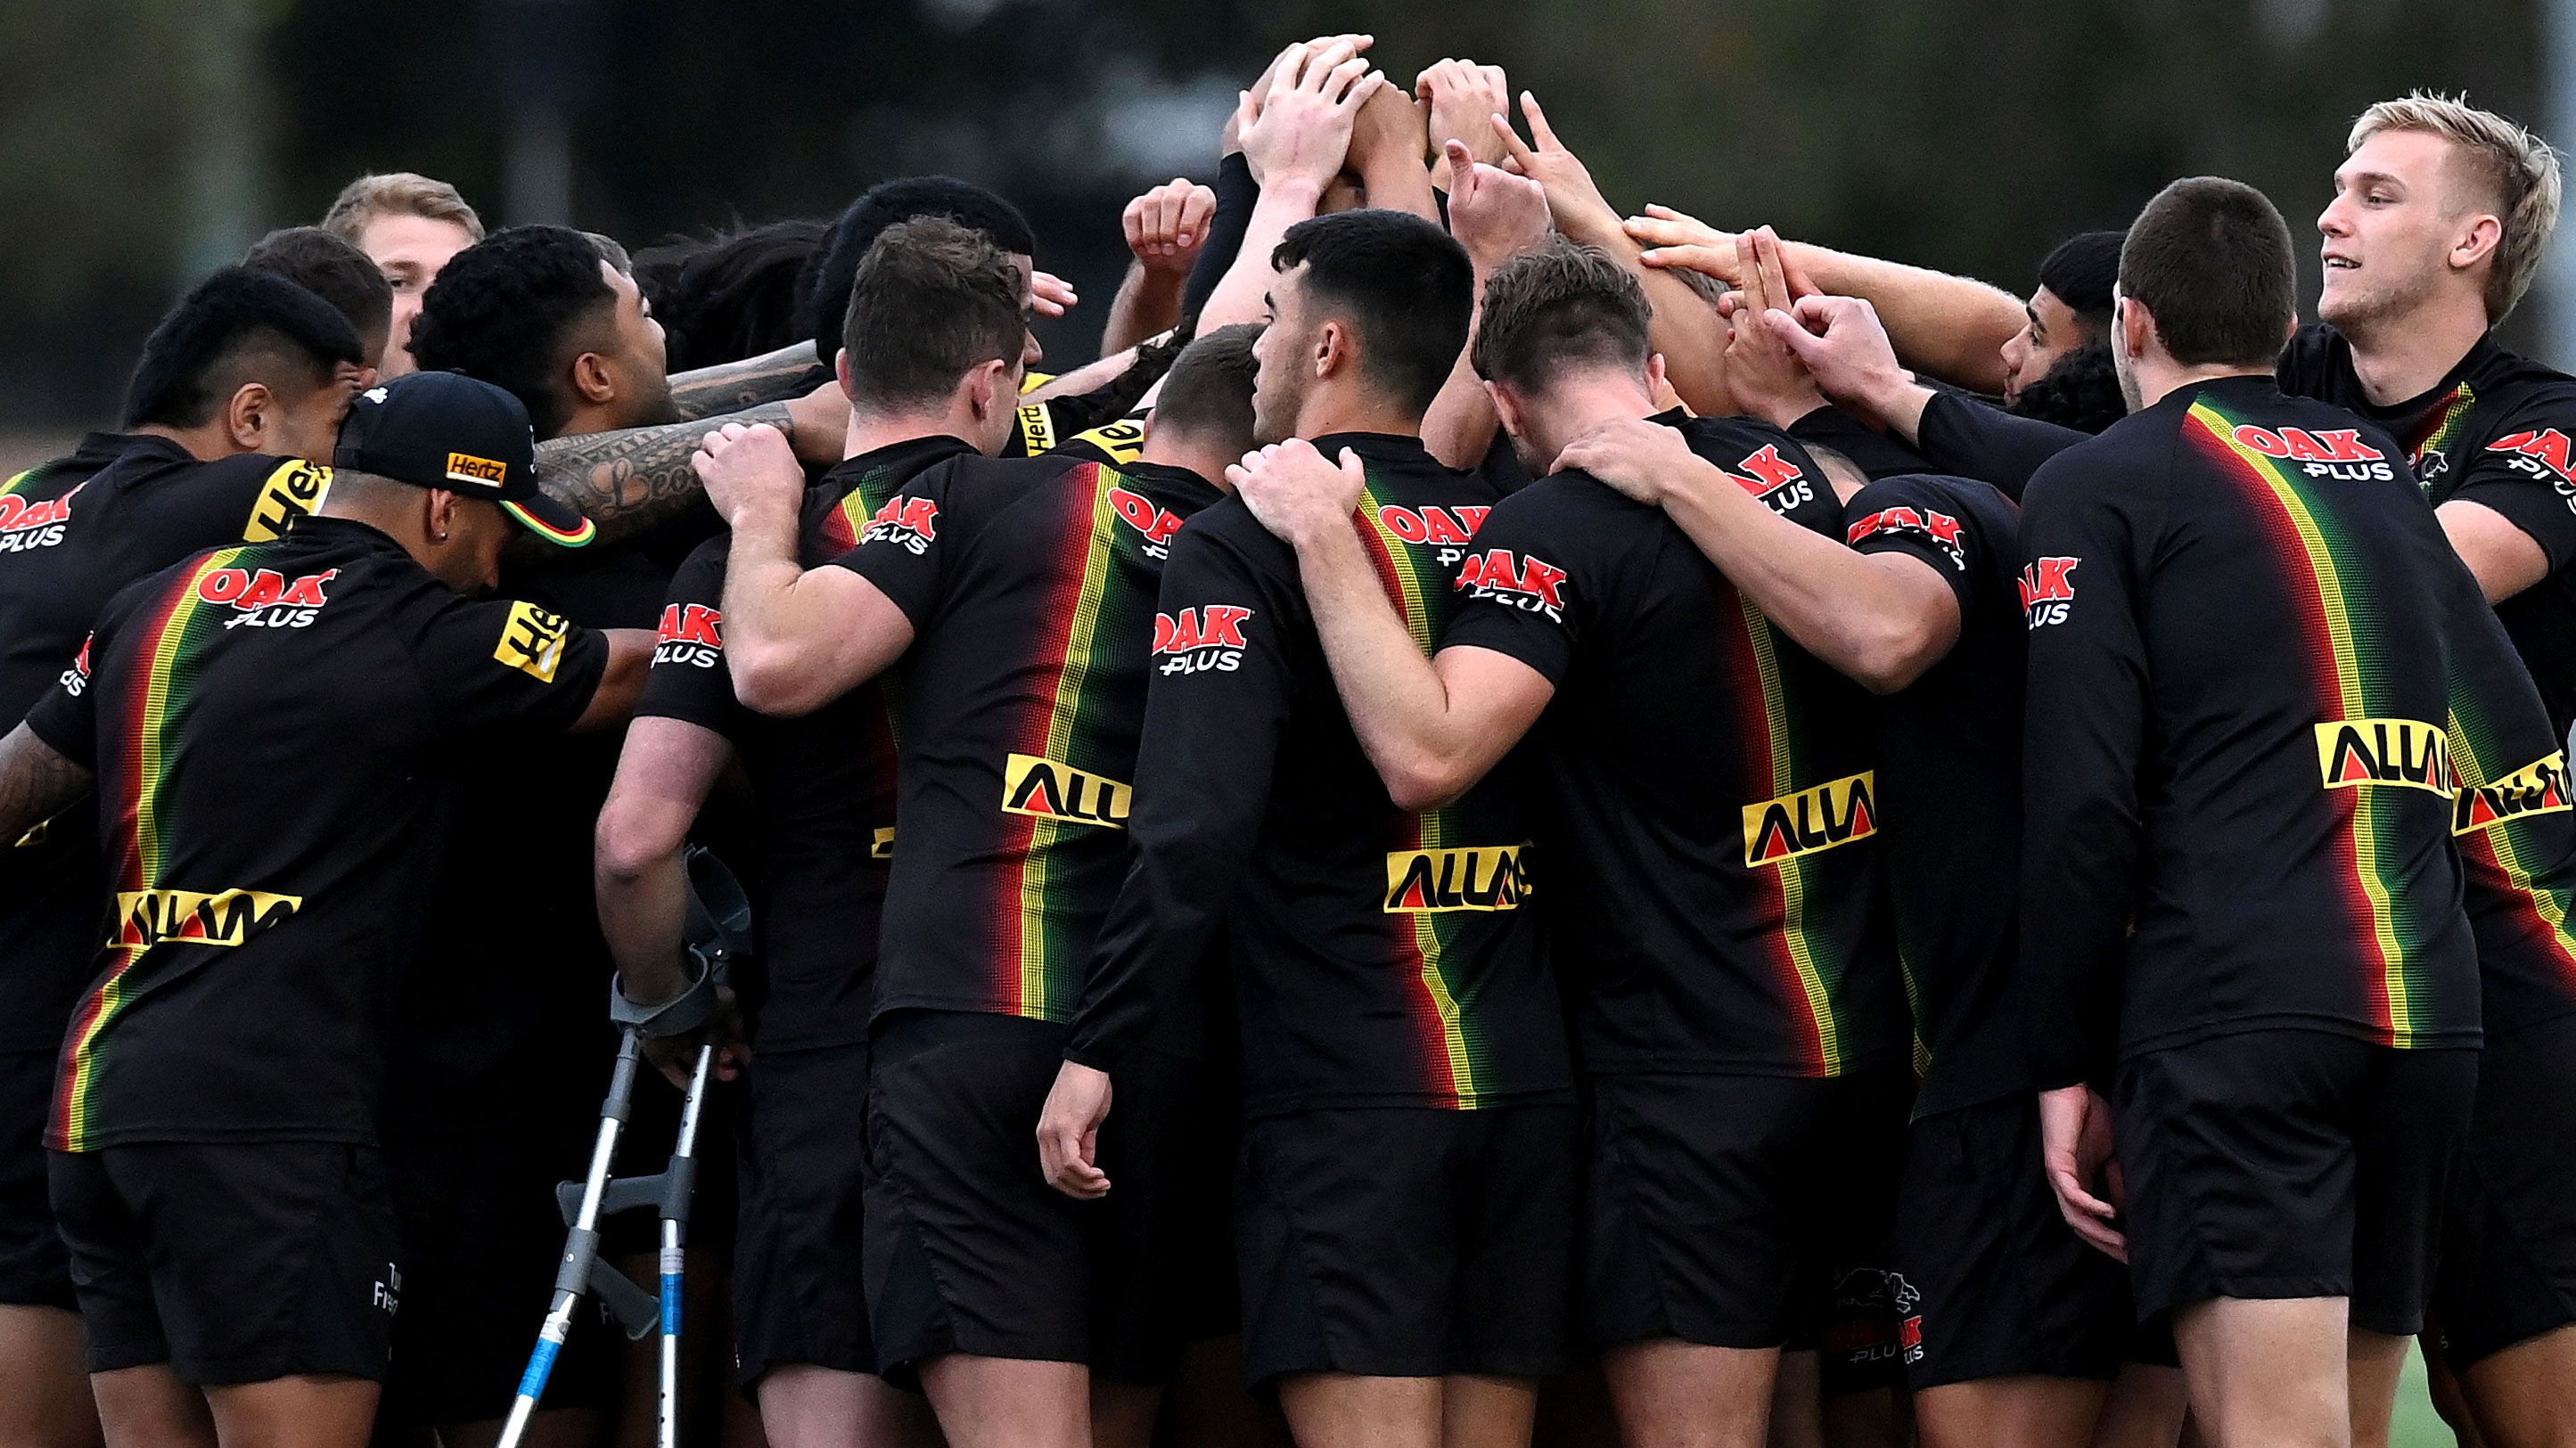 The players embrace during a Penrith Panthers training session at Sunshine Coast Stadium.